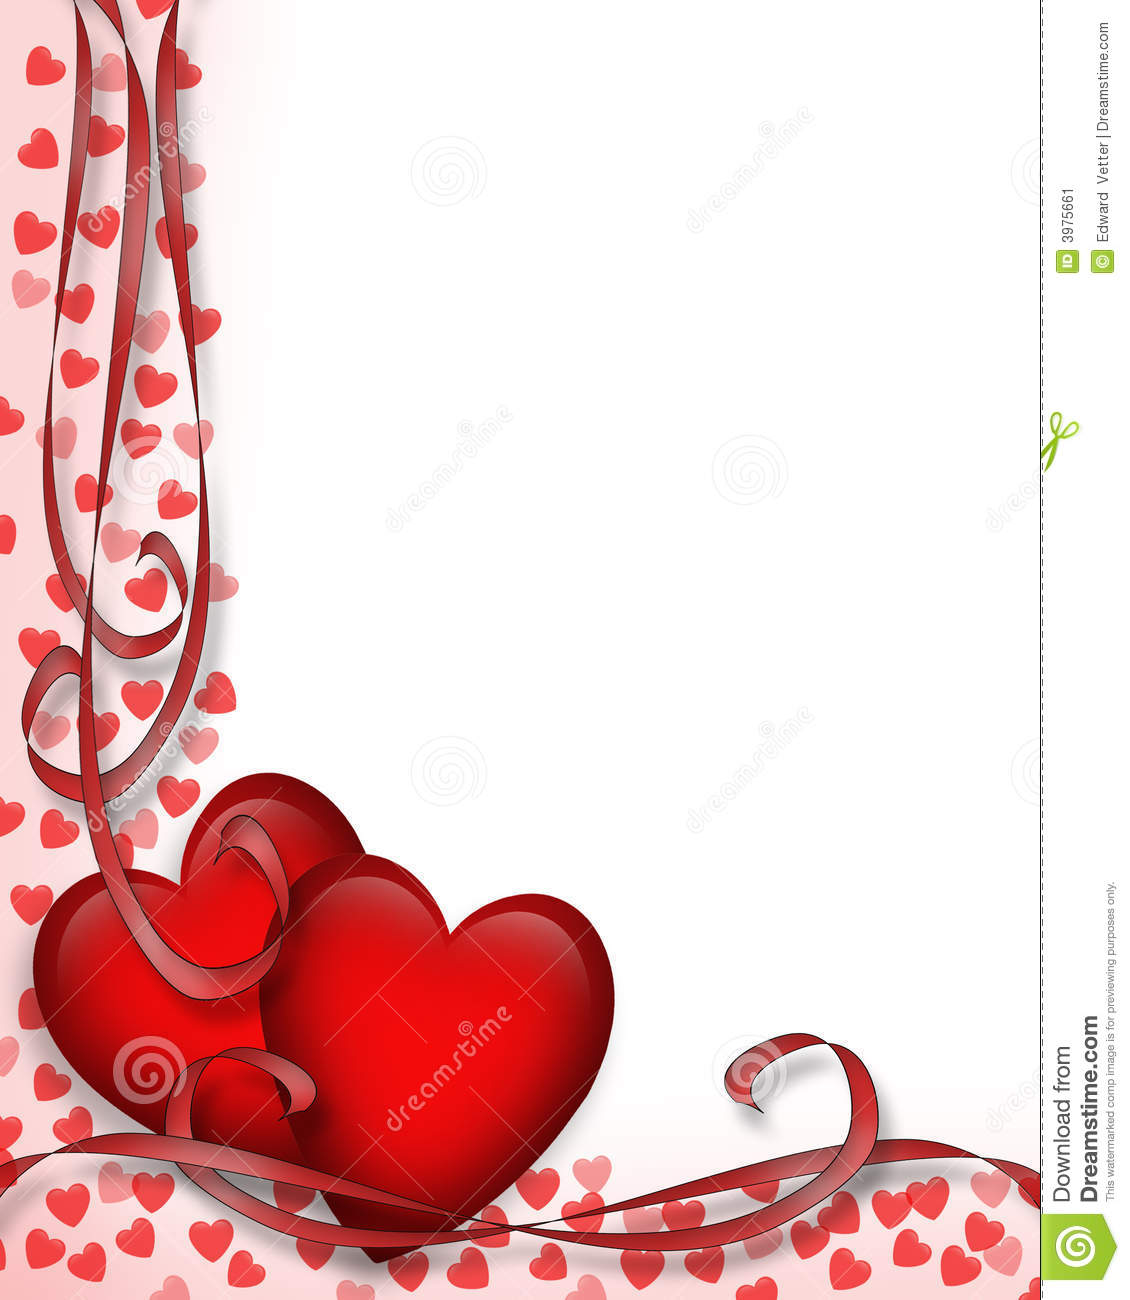 Valentines Day Border Red Hearts 3d Stock Image Image